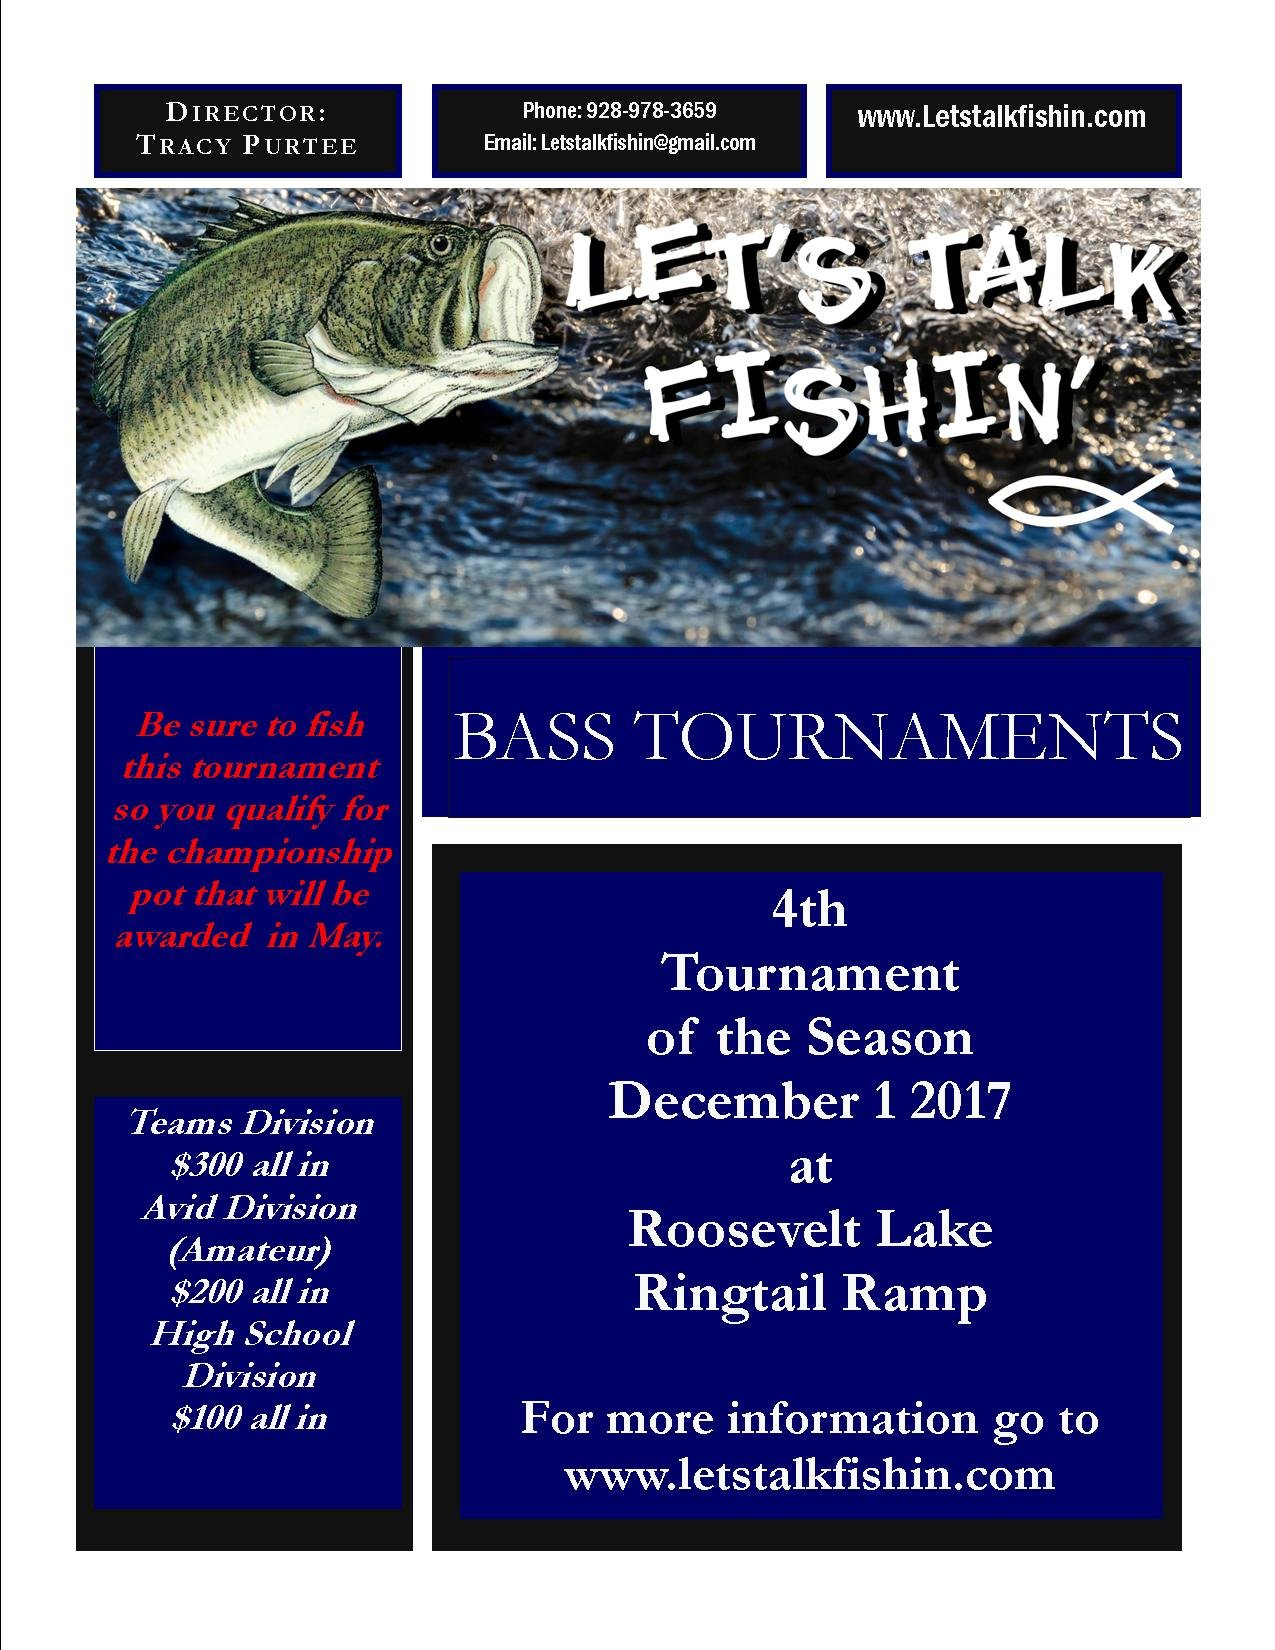 Click image for larger version  Name:4th Tournament.jpg Views:1342 Size:285.4 KB ID:96770